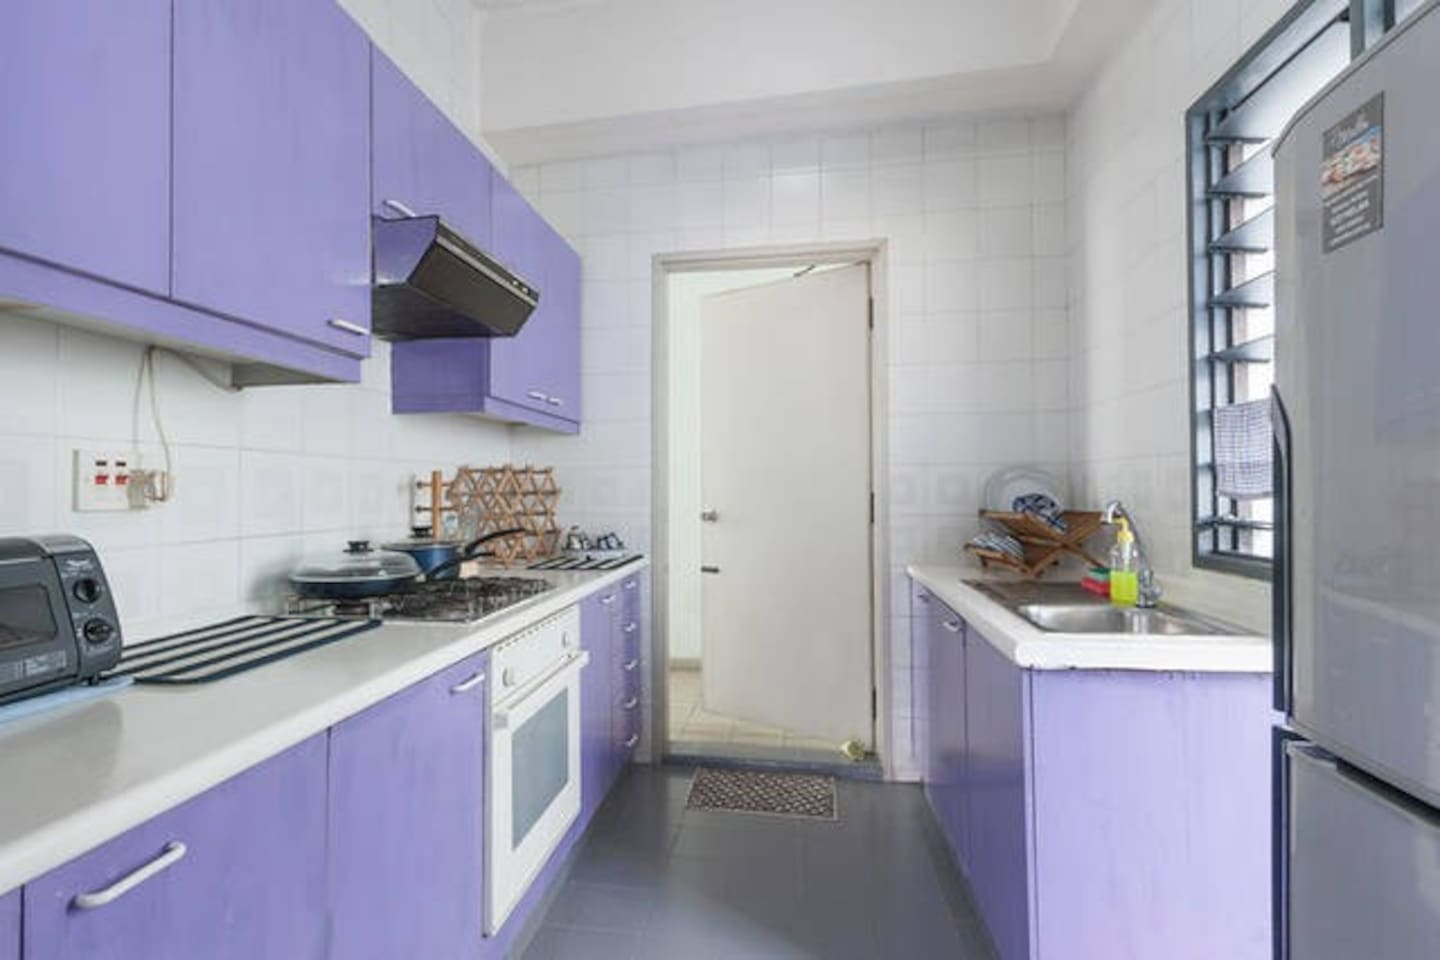 Your own private equipped kitchen with microwave oven, gas stove, cutleries, cooking utensils, fruits n vegetables cutter/juicer, coffee maker, 3 -door refrigerator, washing machine.